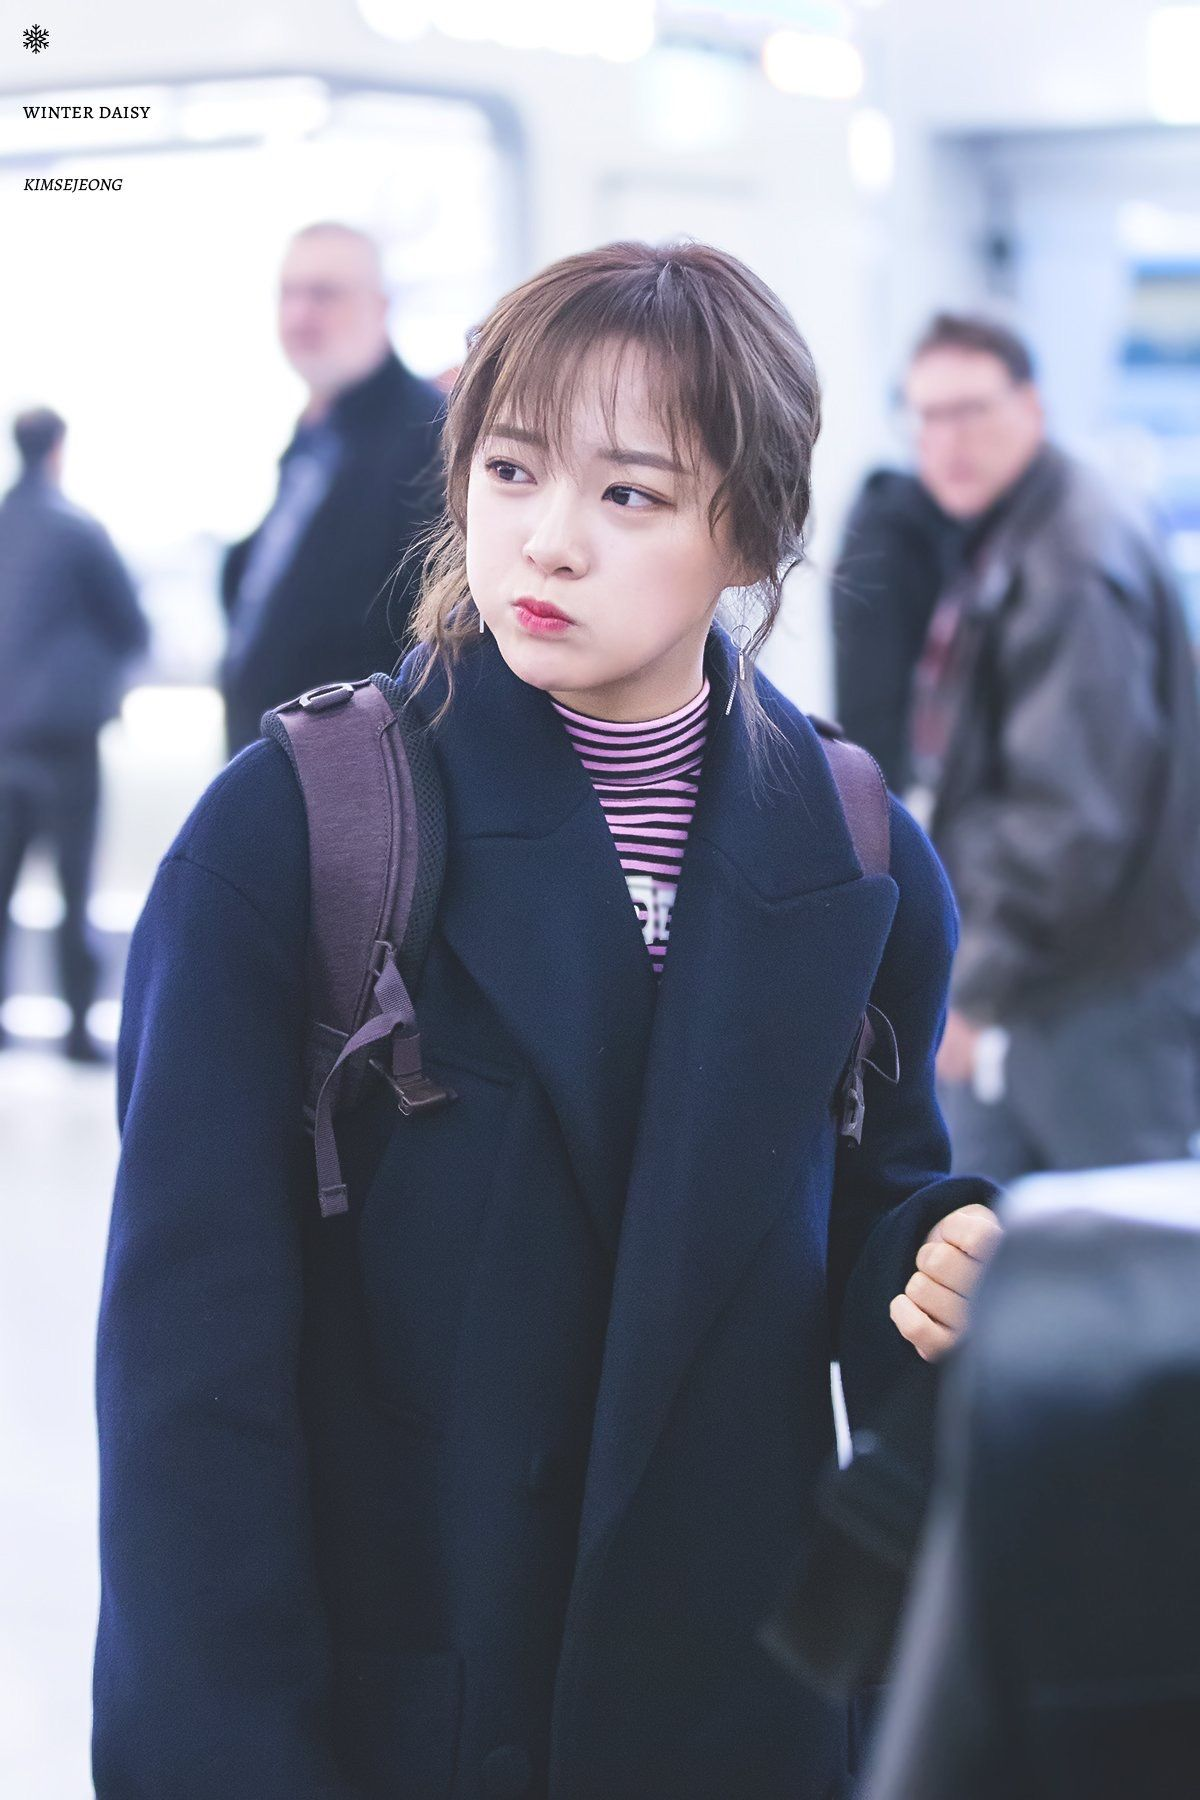 170128 Kim Sejeong Incheon Airport To Sumatra Indonesia For Law Of The Jungle Cr Winterdaisy1204 Kim Kpop Idol